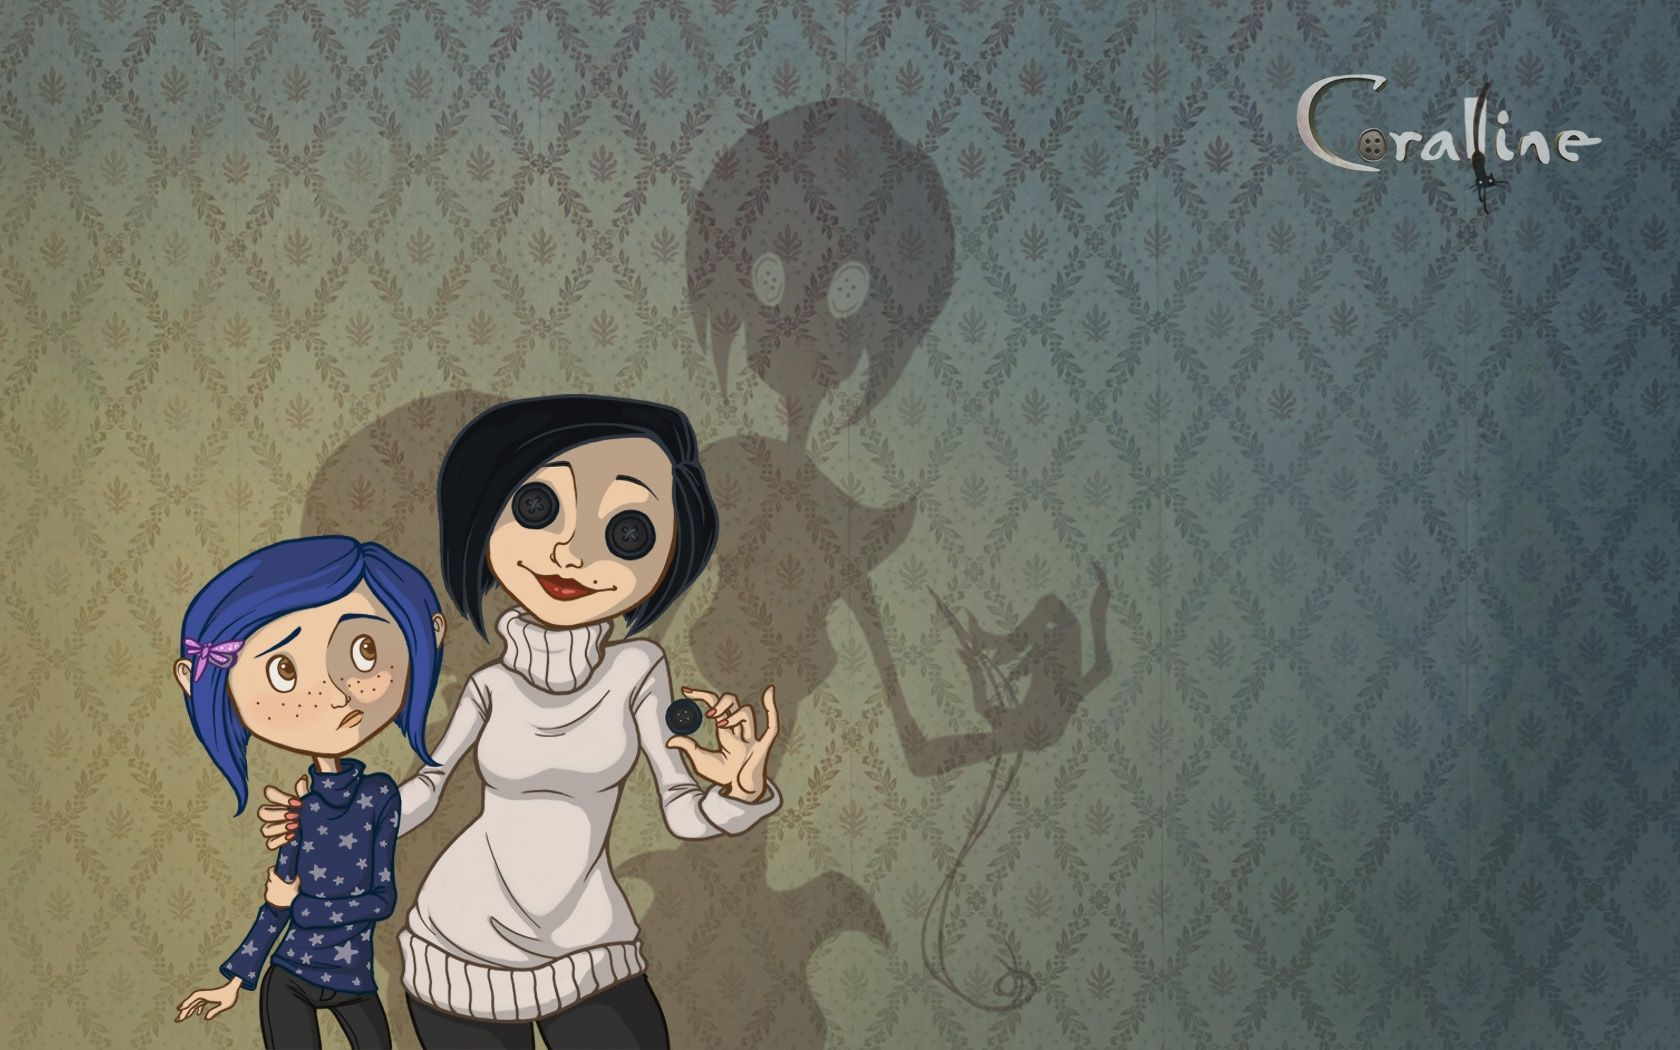 Coraline Wallpaper Hd 1680x1050 469775 Coraline Coraline Art Tim Burton Art